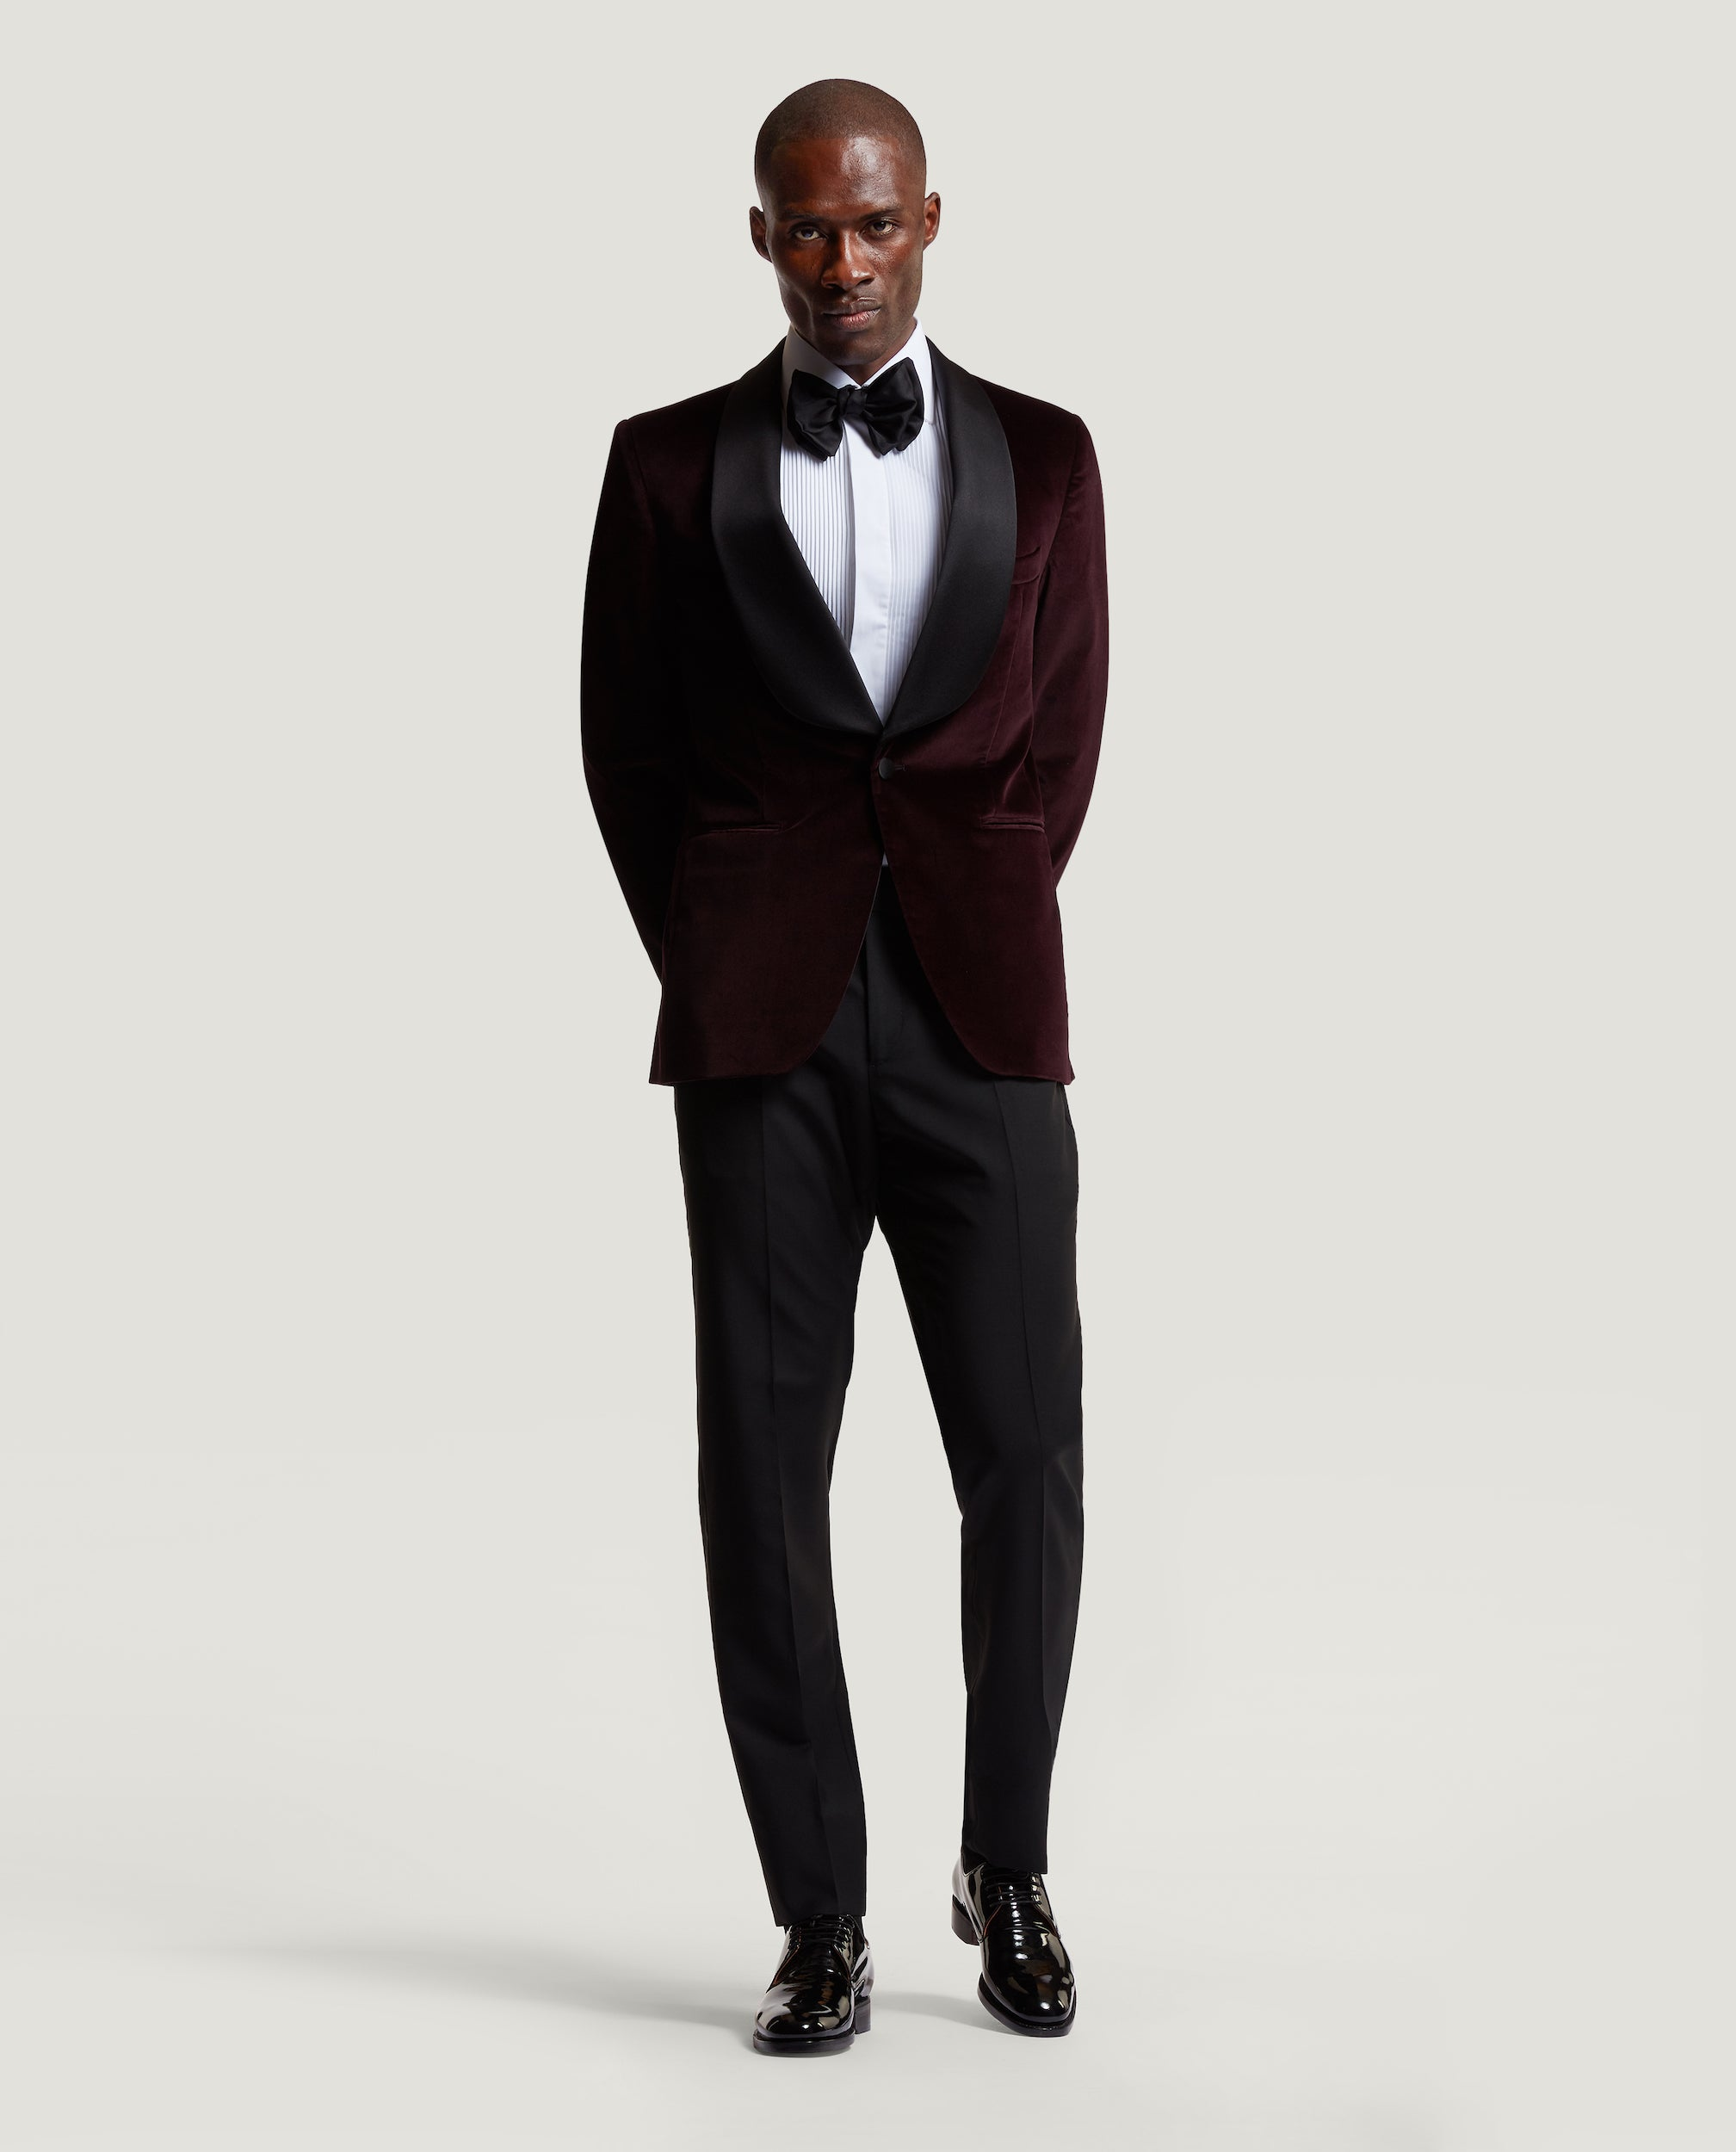 BORI Constructed Shawl Tuxedo | MR PORTER EXCLUSIVE